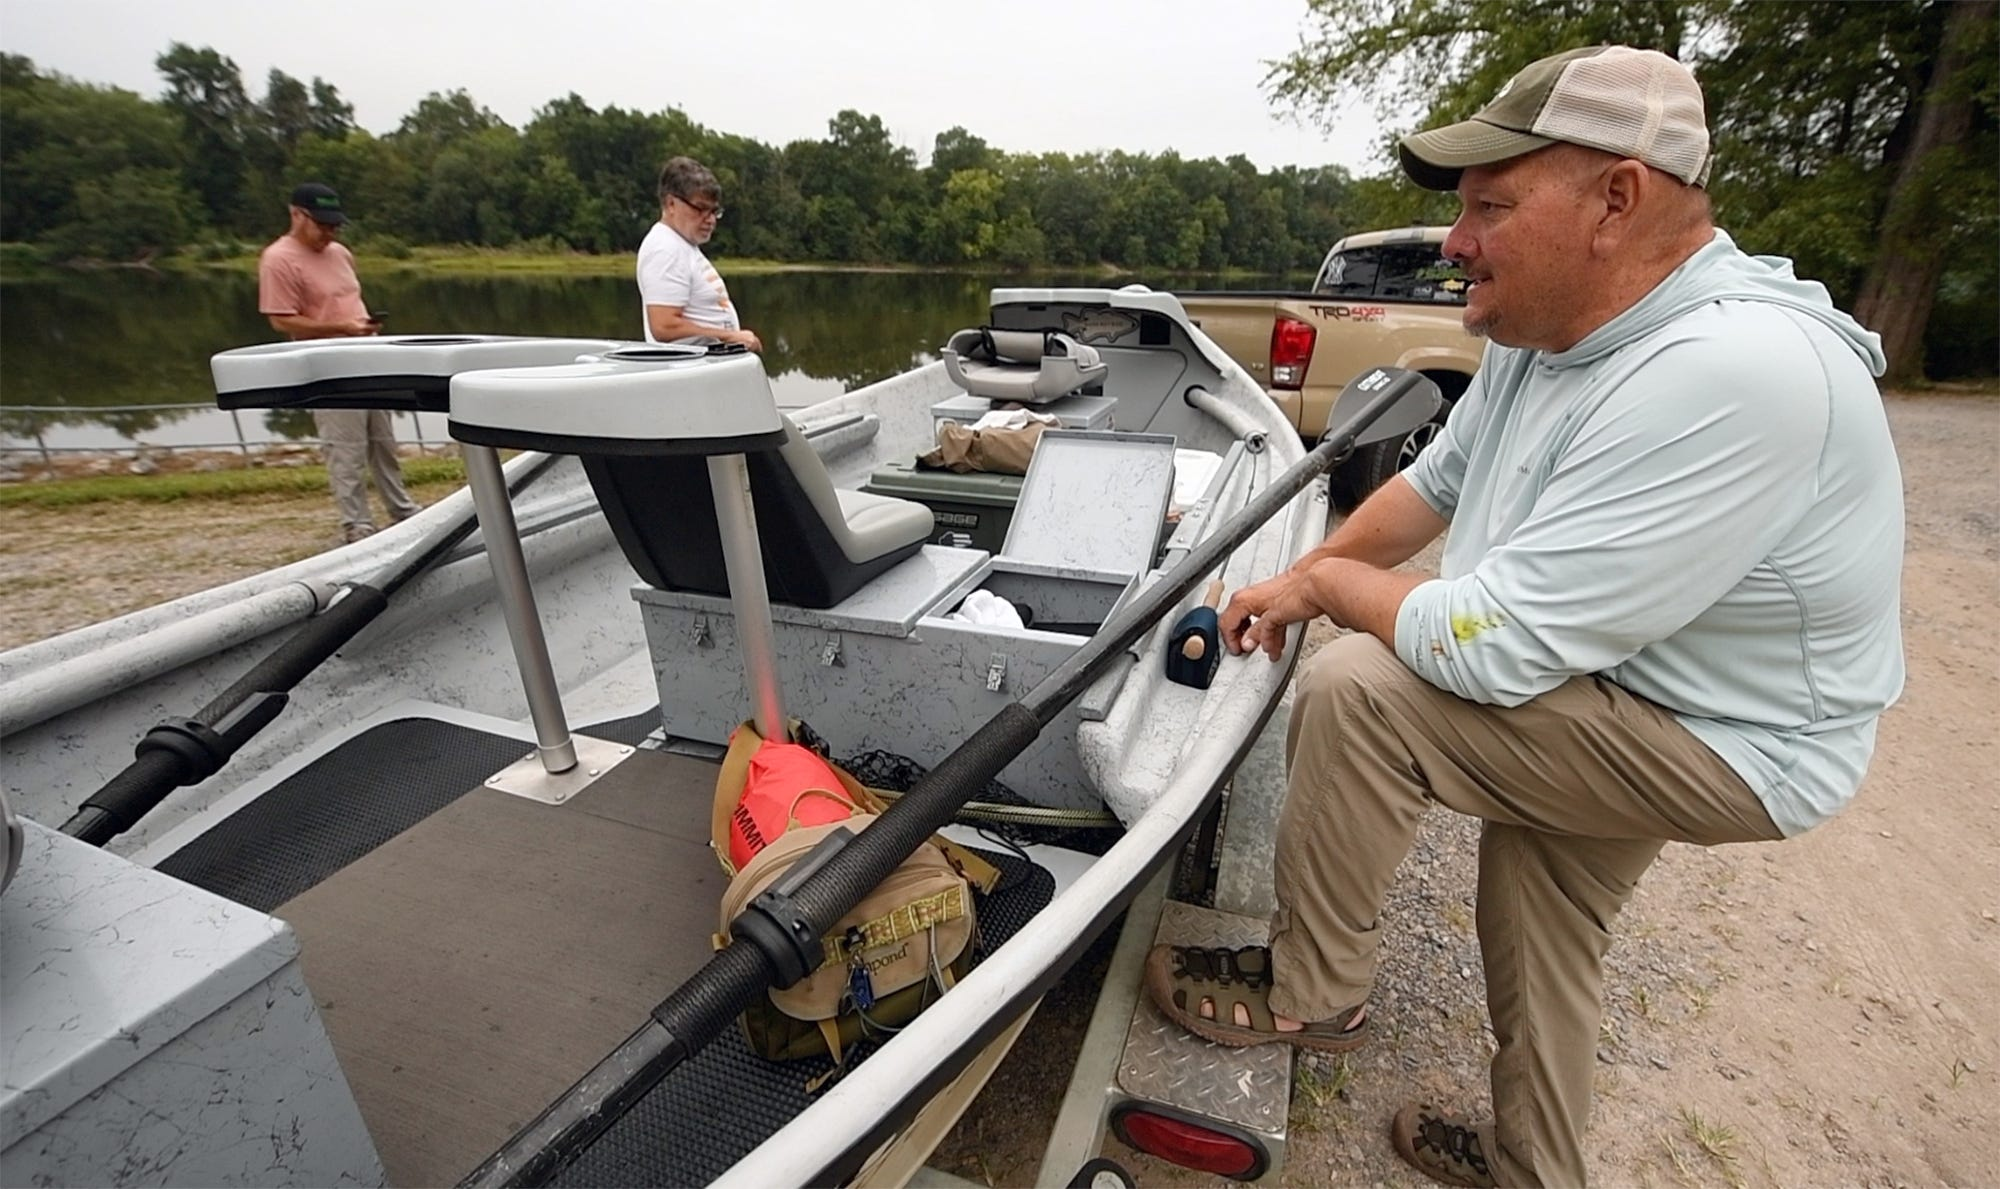 Brian Shumaker talks about his love for fishing that began when he was 7 years before taking two clients into the Juniata River near Newport, Pennsylvania Thursday September 10, 2020.